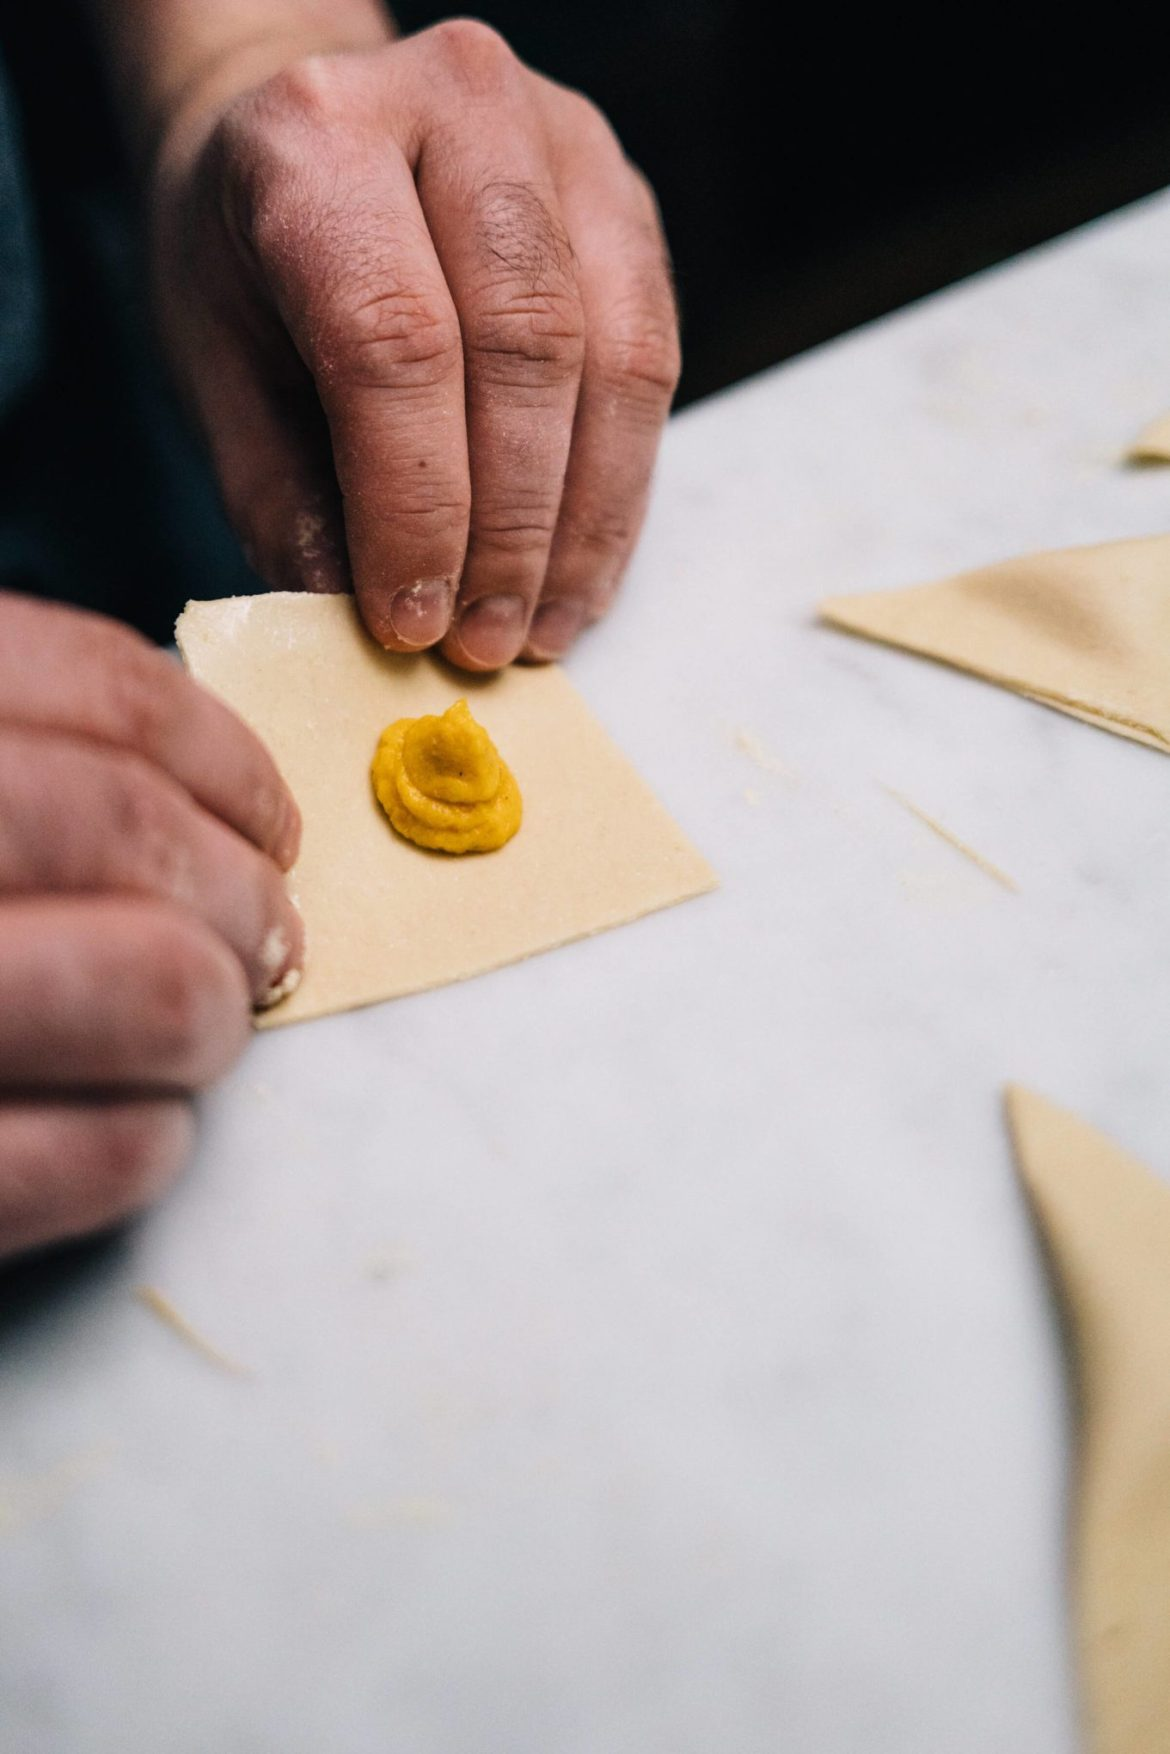 Folding pasta to make agnolotti in How to Make pasta at home with The Taste Edit and KitchenAid